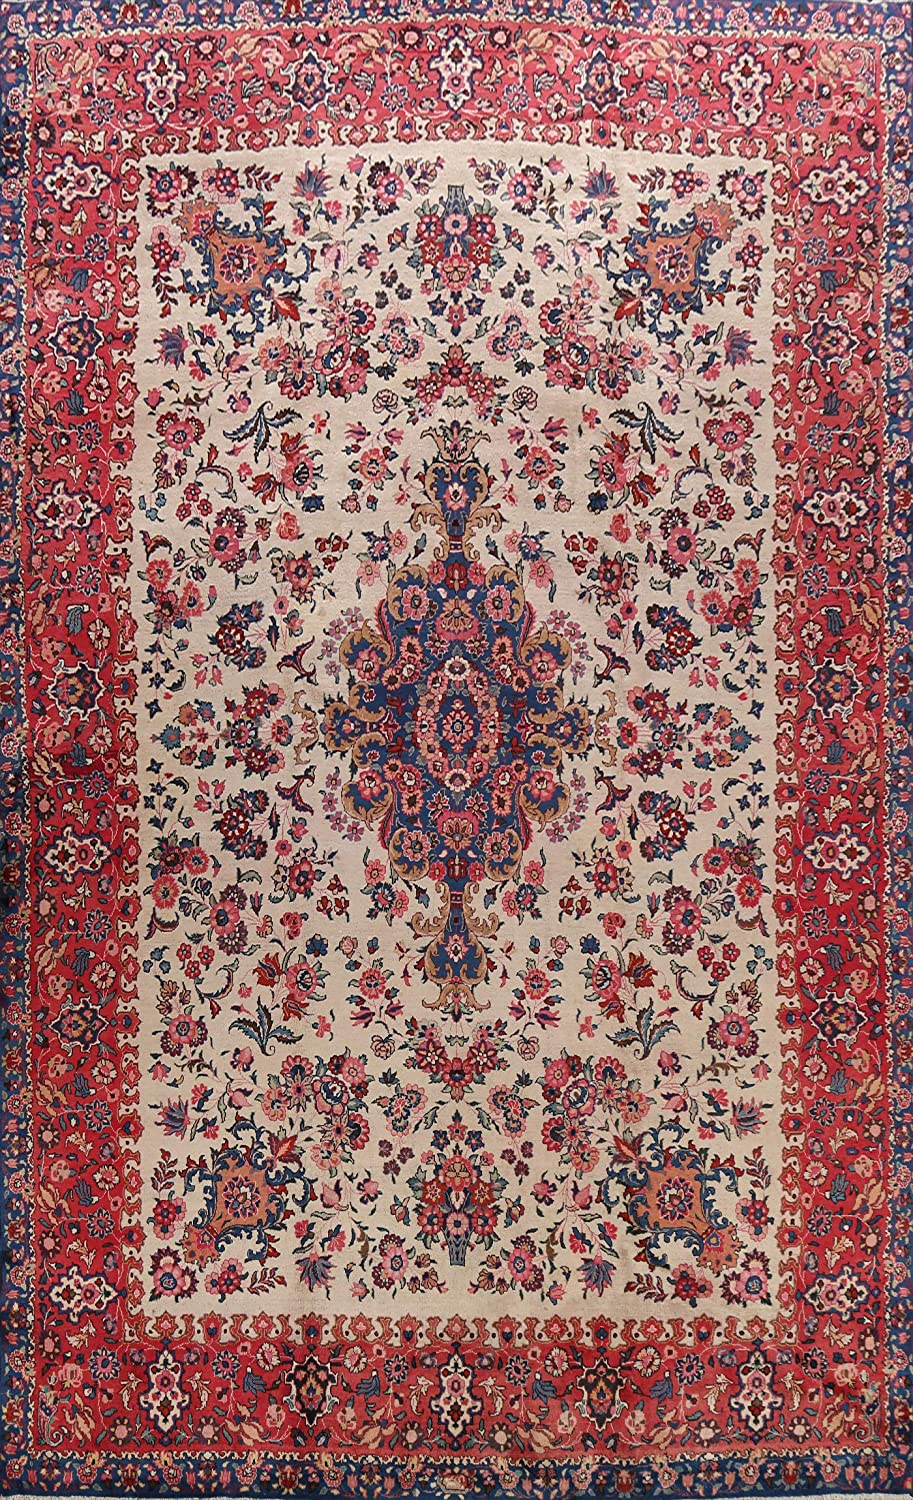 Floral Virginia Beach Mall Kashmar Oriental Area Max 81% OFF Rug Room Hand-Knotted Living C Wool